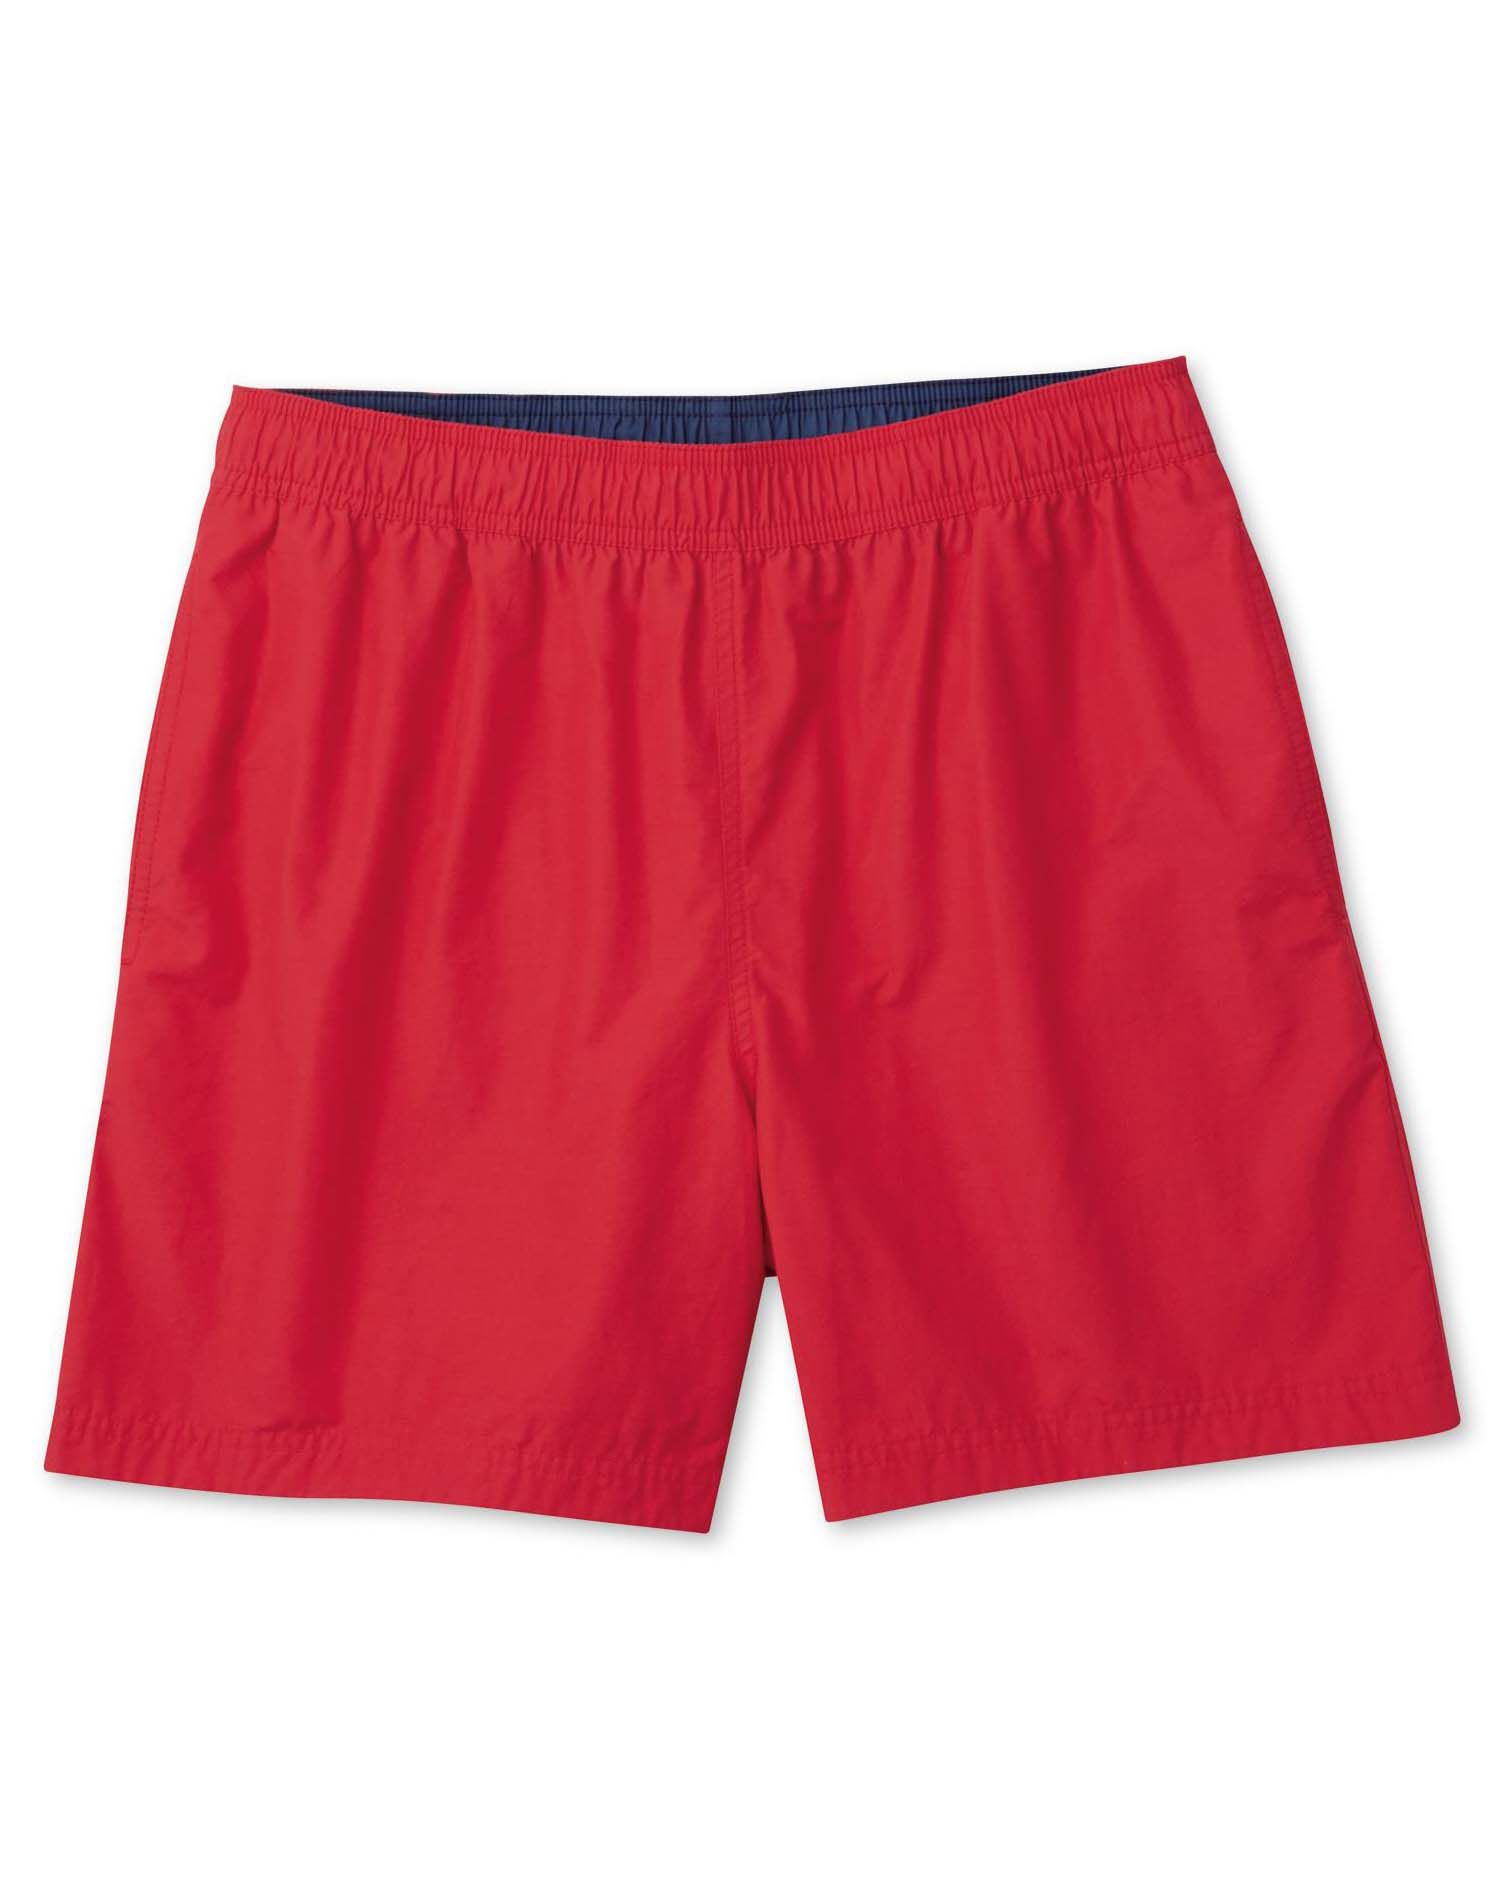 Red Cotton Swim Shorts Size Small by Charles Tyrwhitt